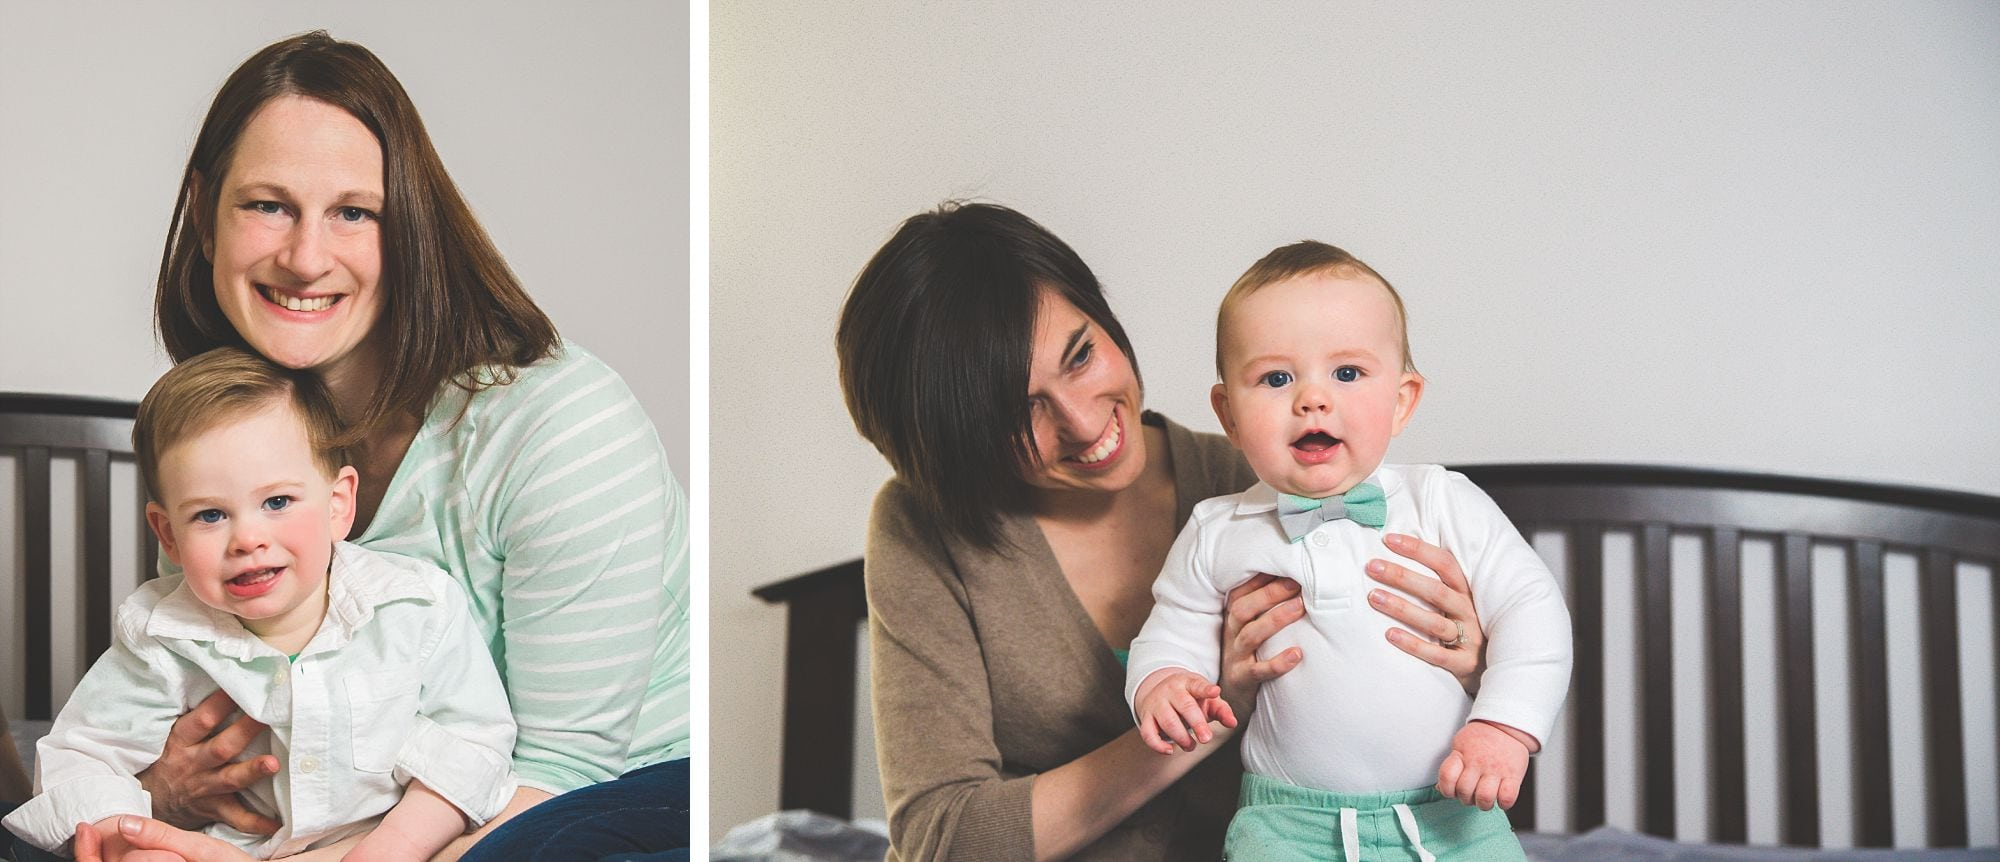 Collage of lesbian couple with their toddler and baby smiling naturally, wearing mint and white